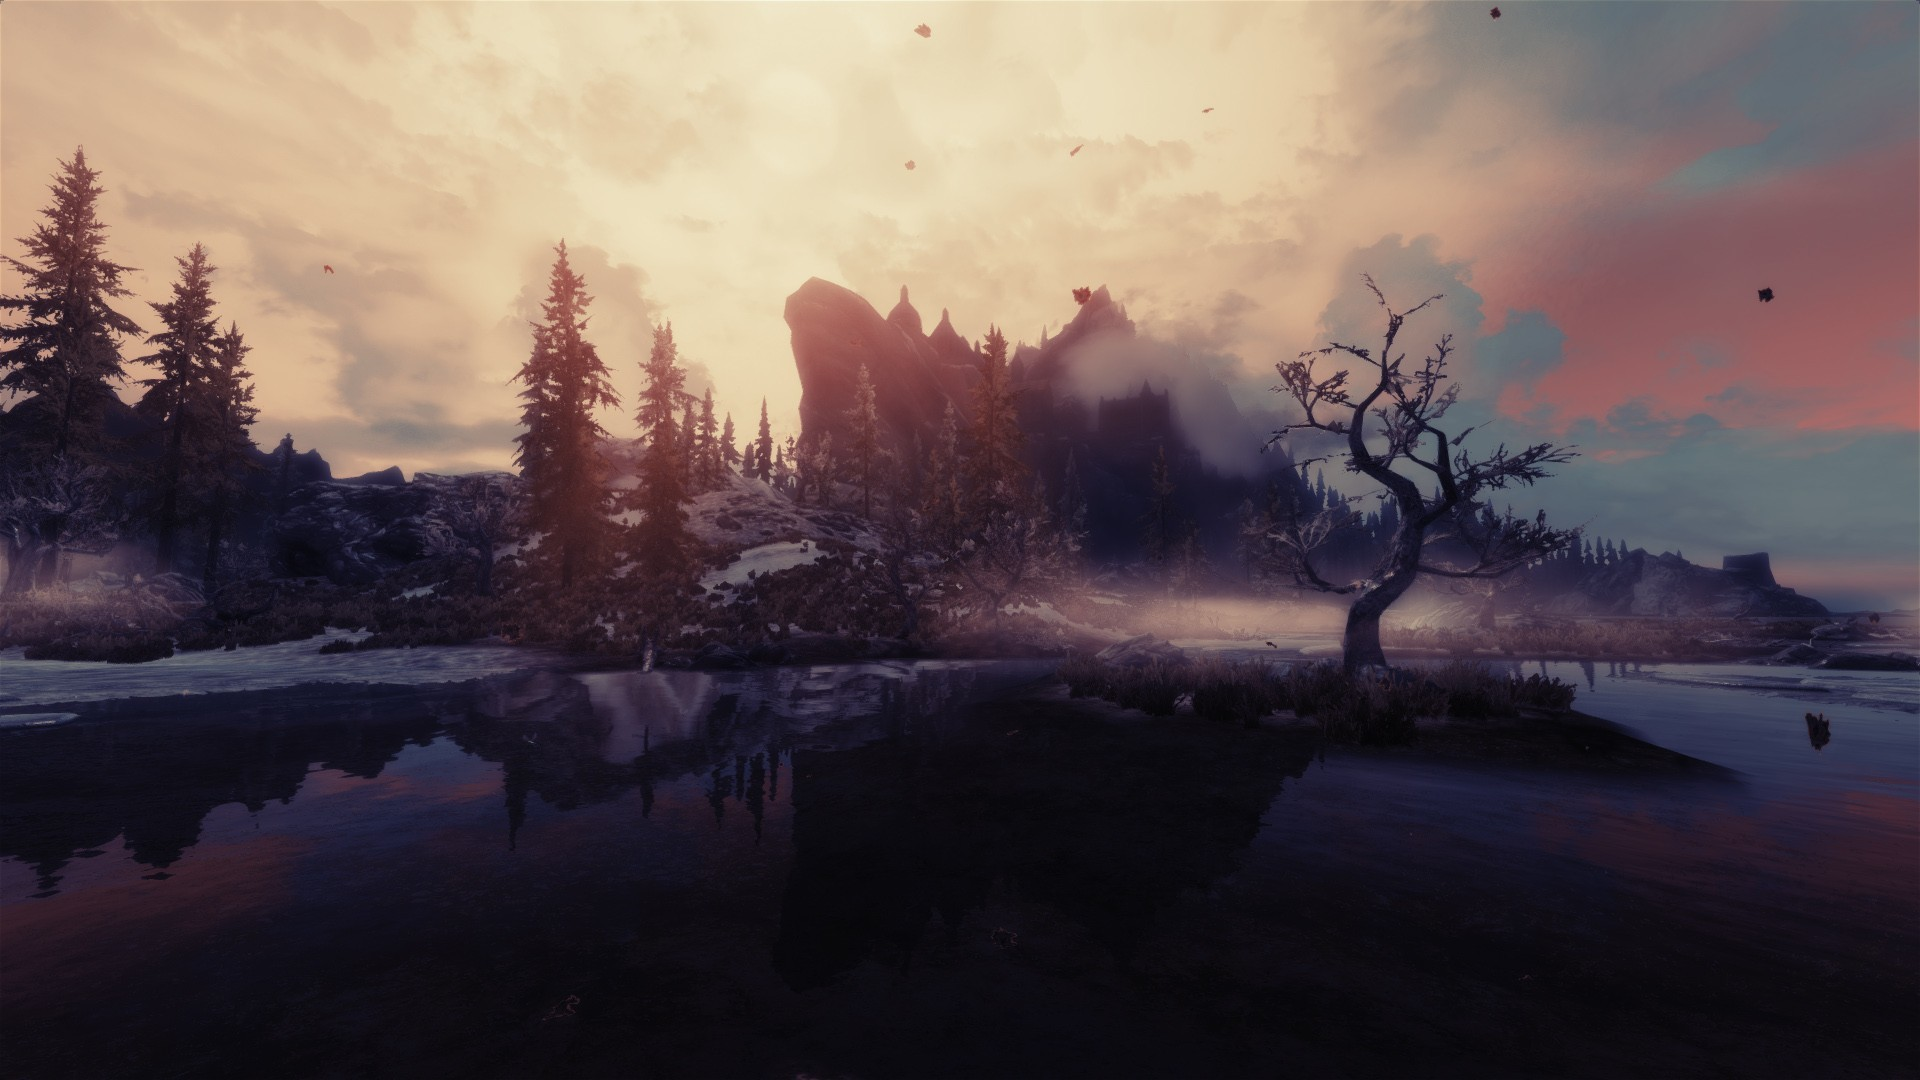 Res: 1920x1080, Download image Skyrim Iphone Wallpaper Scenery PC Android iPhone and